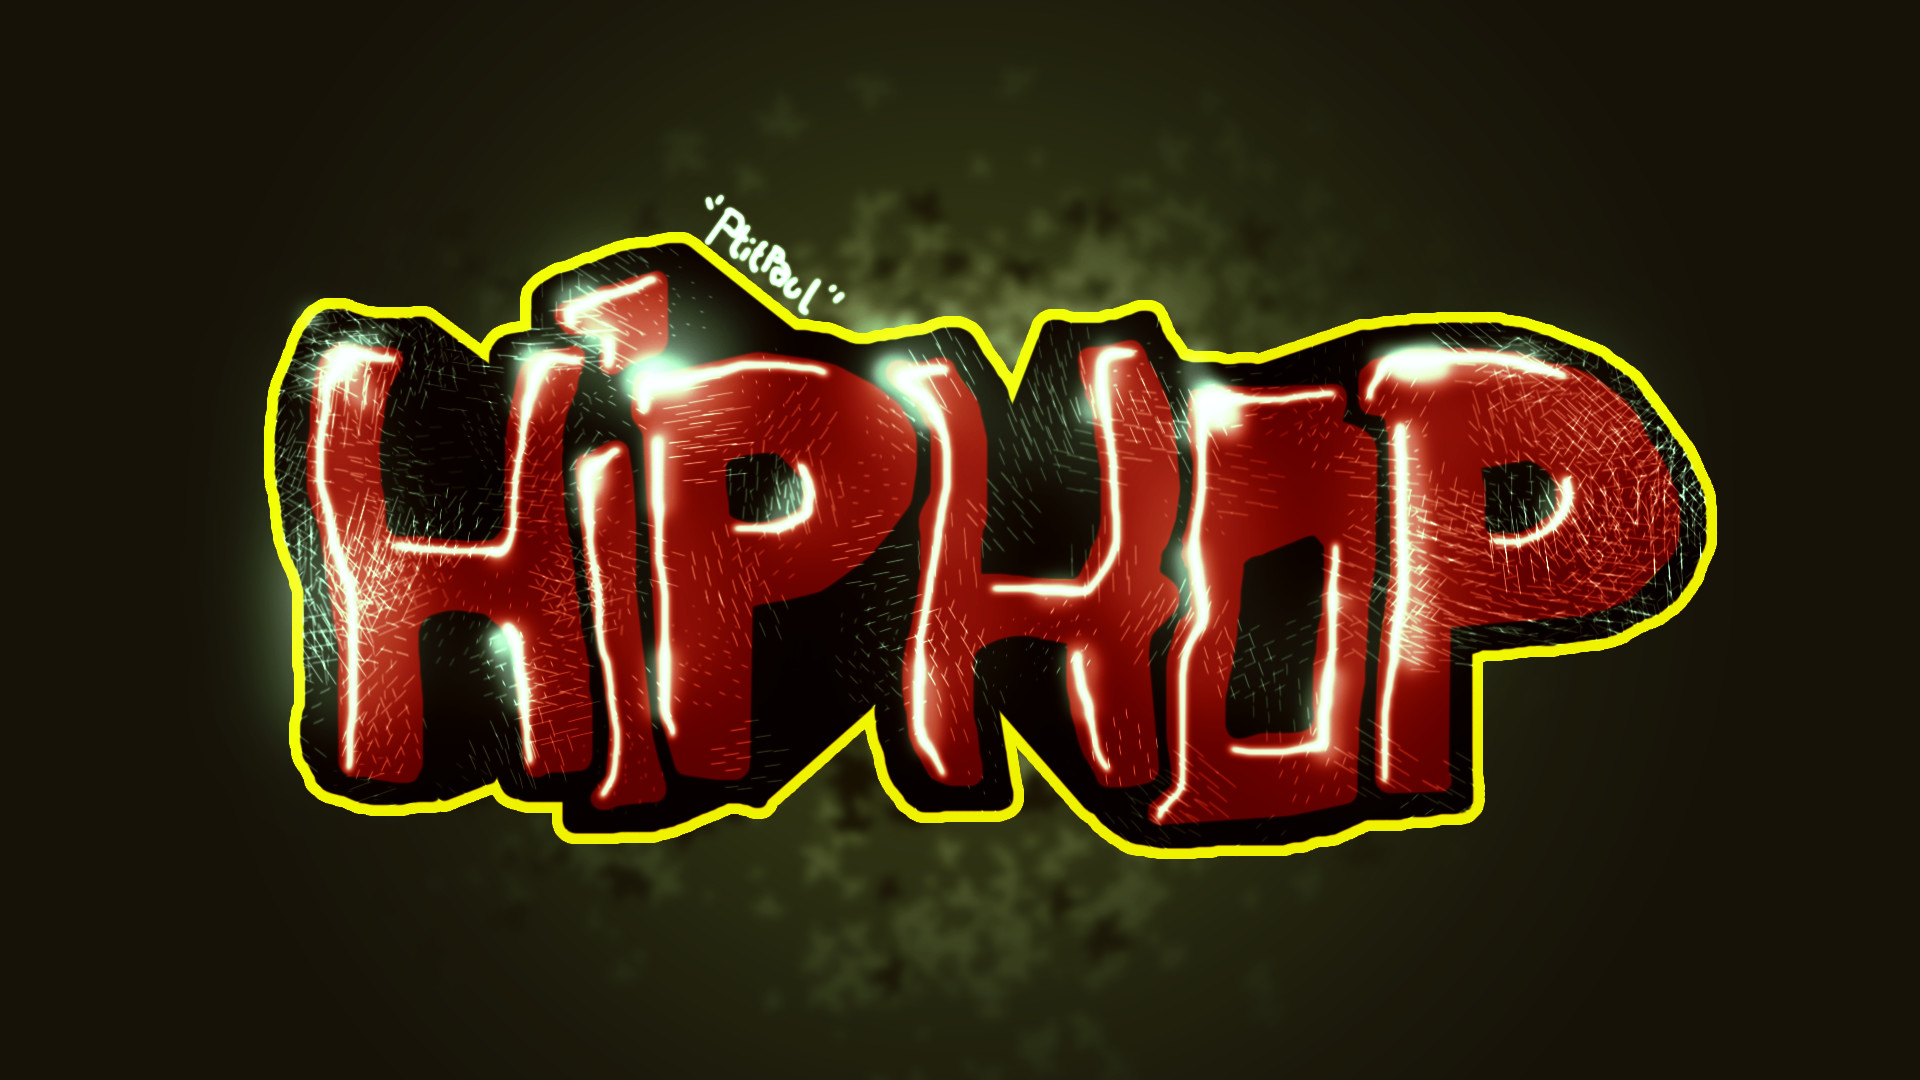 Hip Hop Graffiti | graffiti by ptitpauldesign digital art drawings  paintings graffiti .